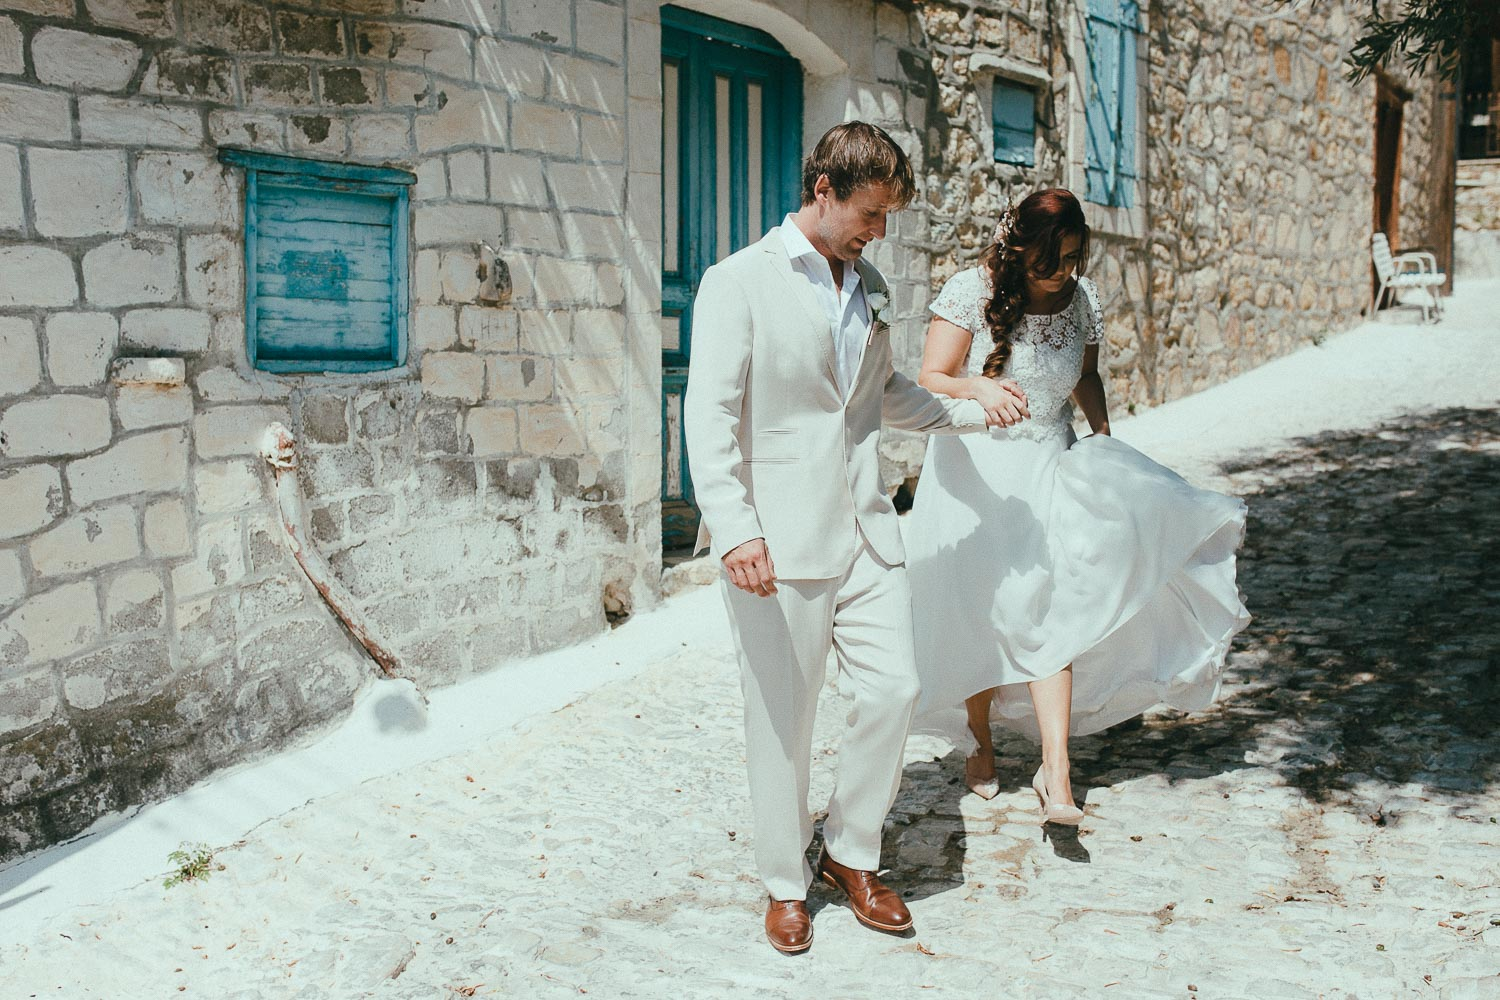 cyprus-wedding-photographer78.jpg